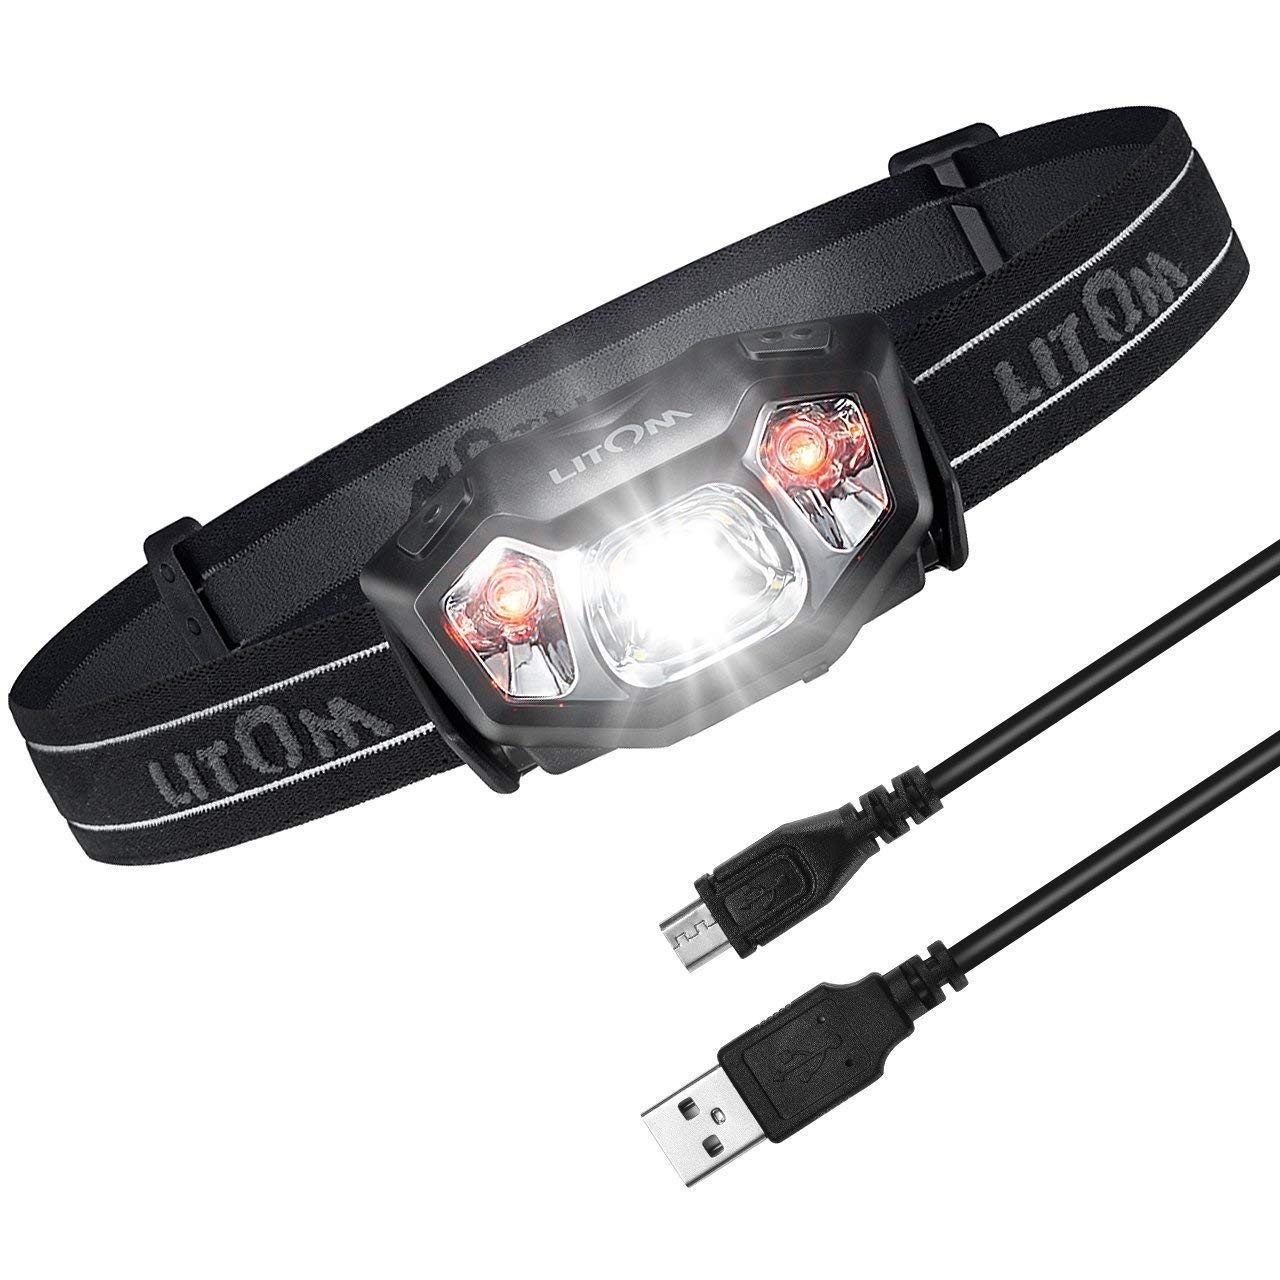 LED Headlamp, Litom Super Bright Rechargeable LED Headlamps IPX6 Waterproof Lights with 6 Lighting Modes for Camping, Hiking, Reading with USB Cable Habor .